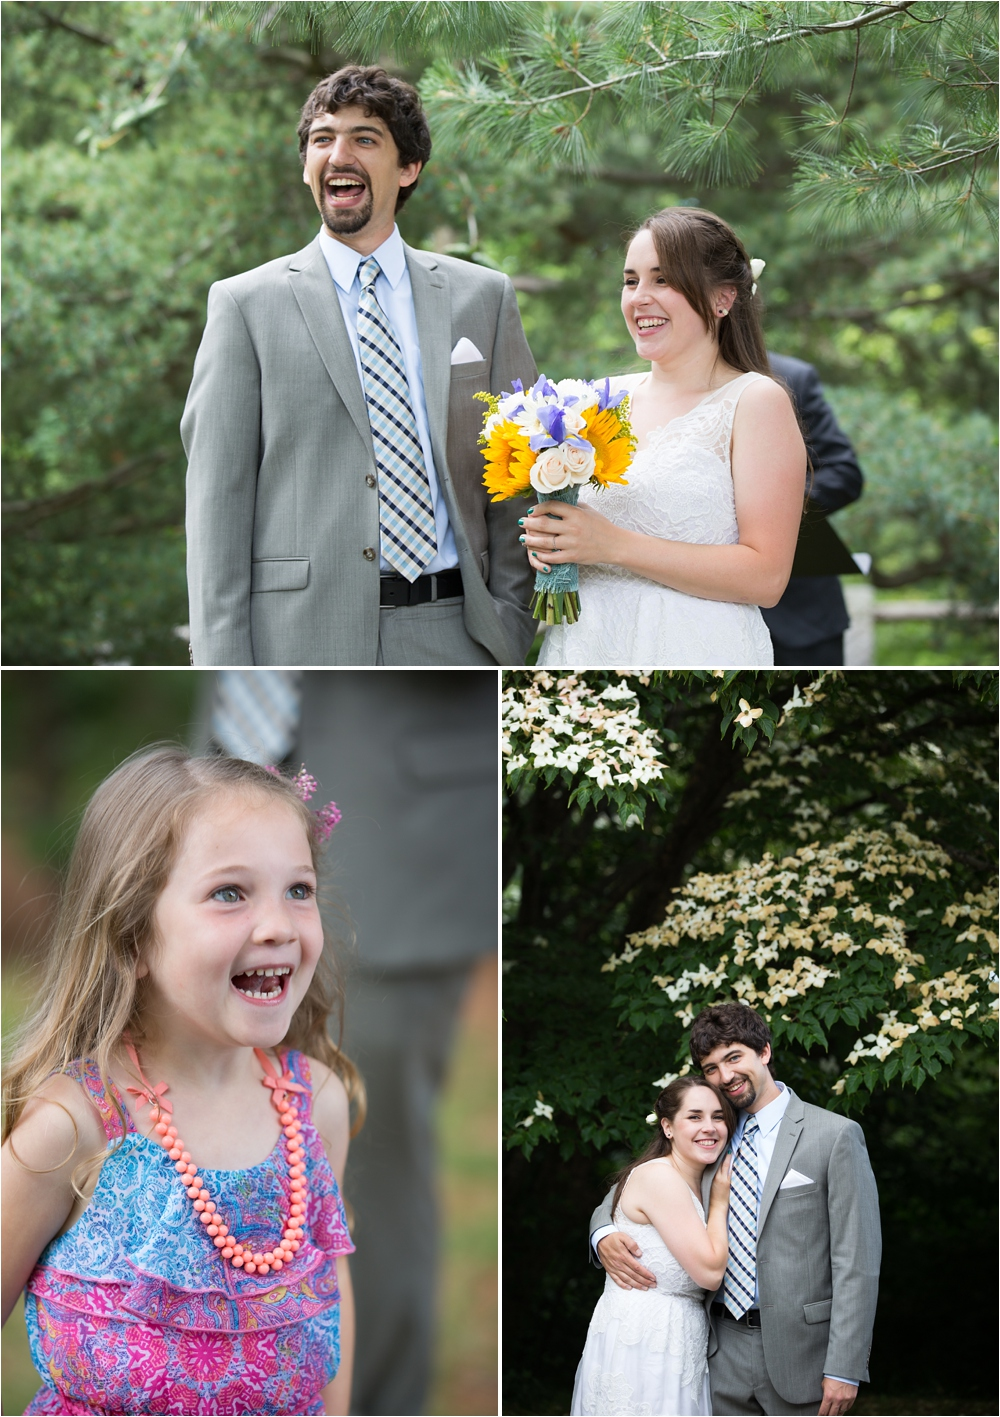 Arnold Arboretum Wedding, Arnold Arboretum Boston Wedding, Boston intimate Wedding Photographer, Boston small wedding photographer, casual and laid back wedding photographer,